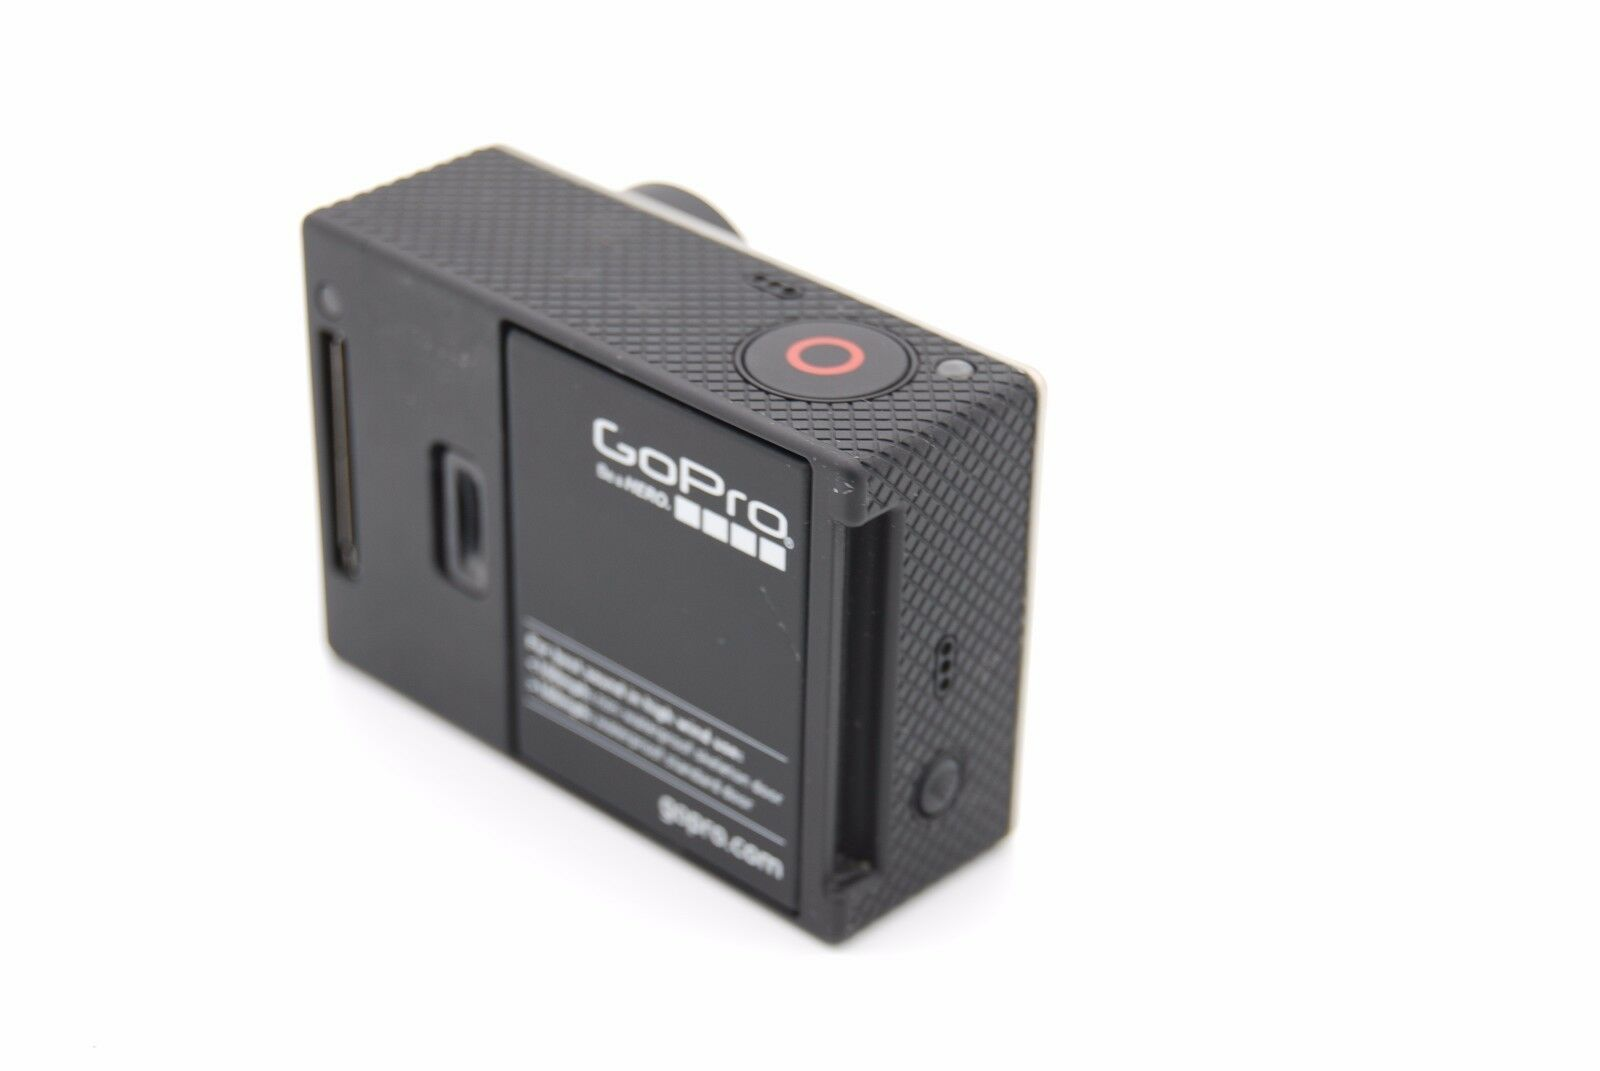 Gopro HERO 3+ Plus Camera Black Edition Camera Camcorder CHDHX-302